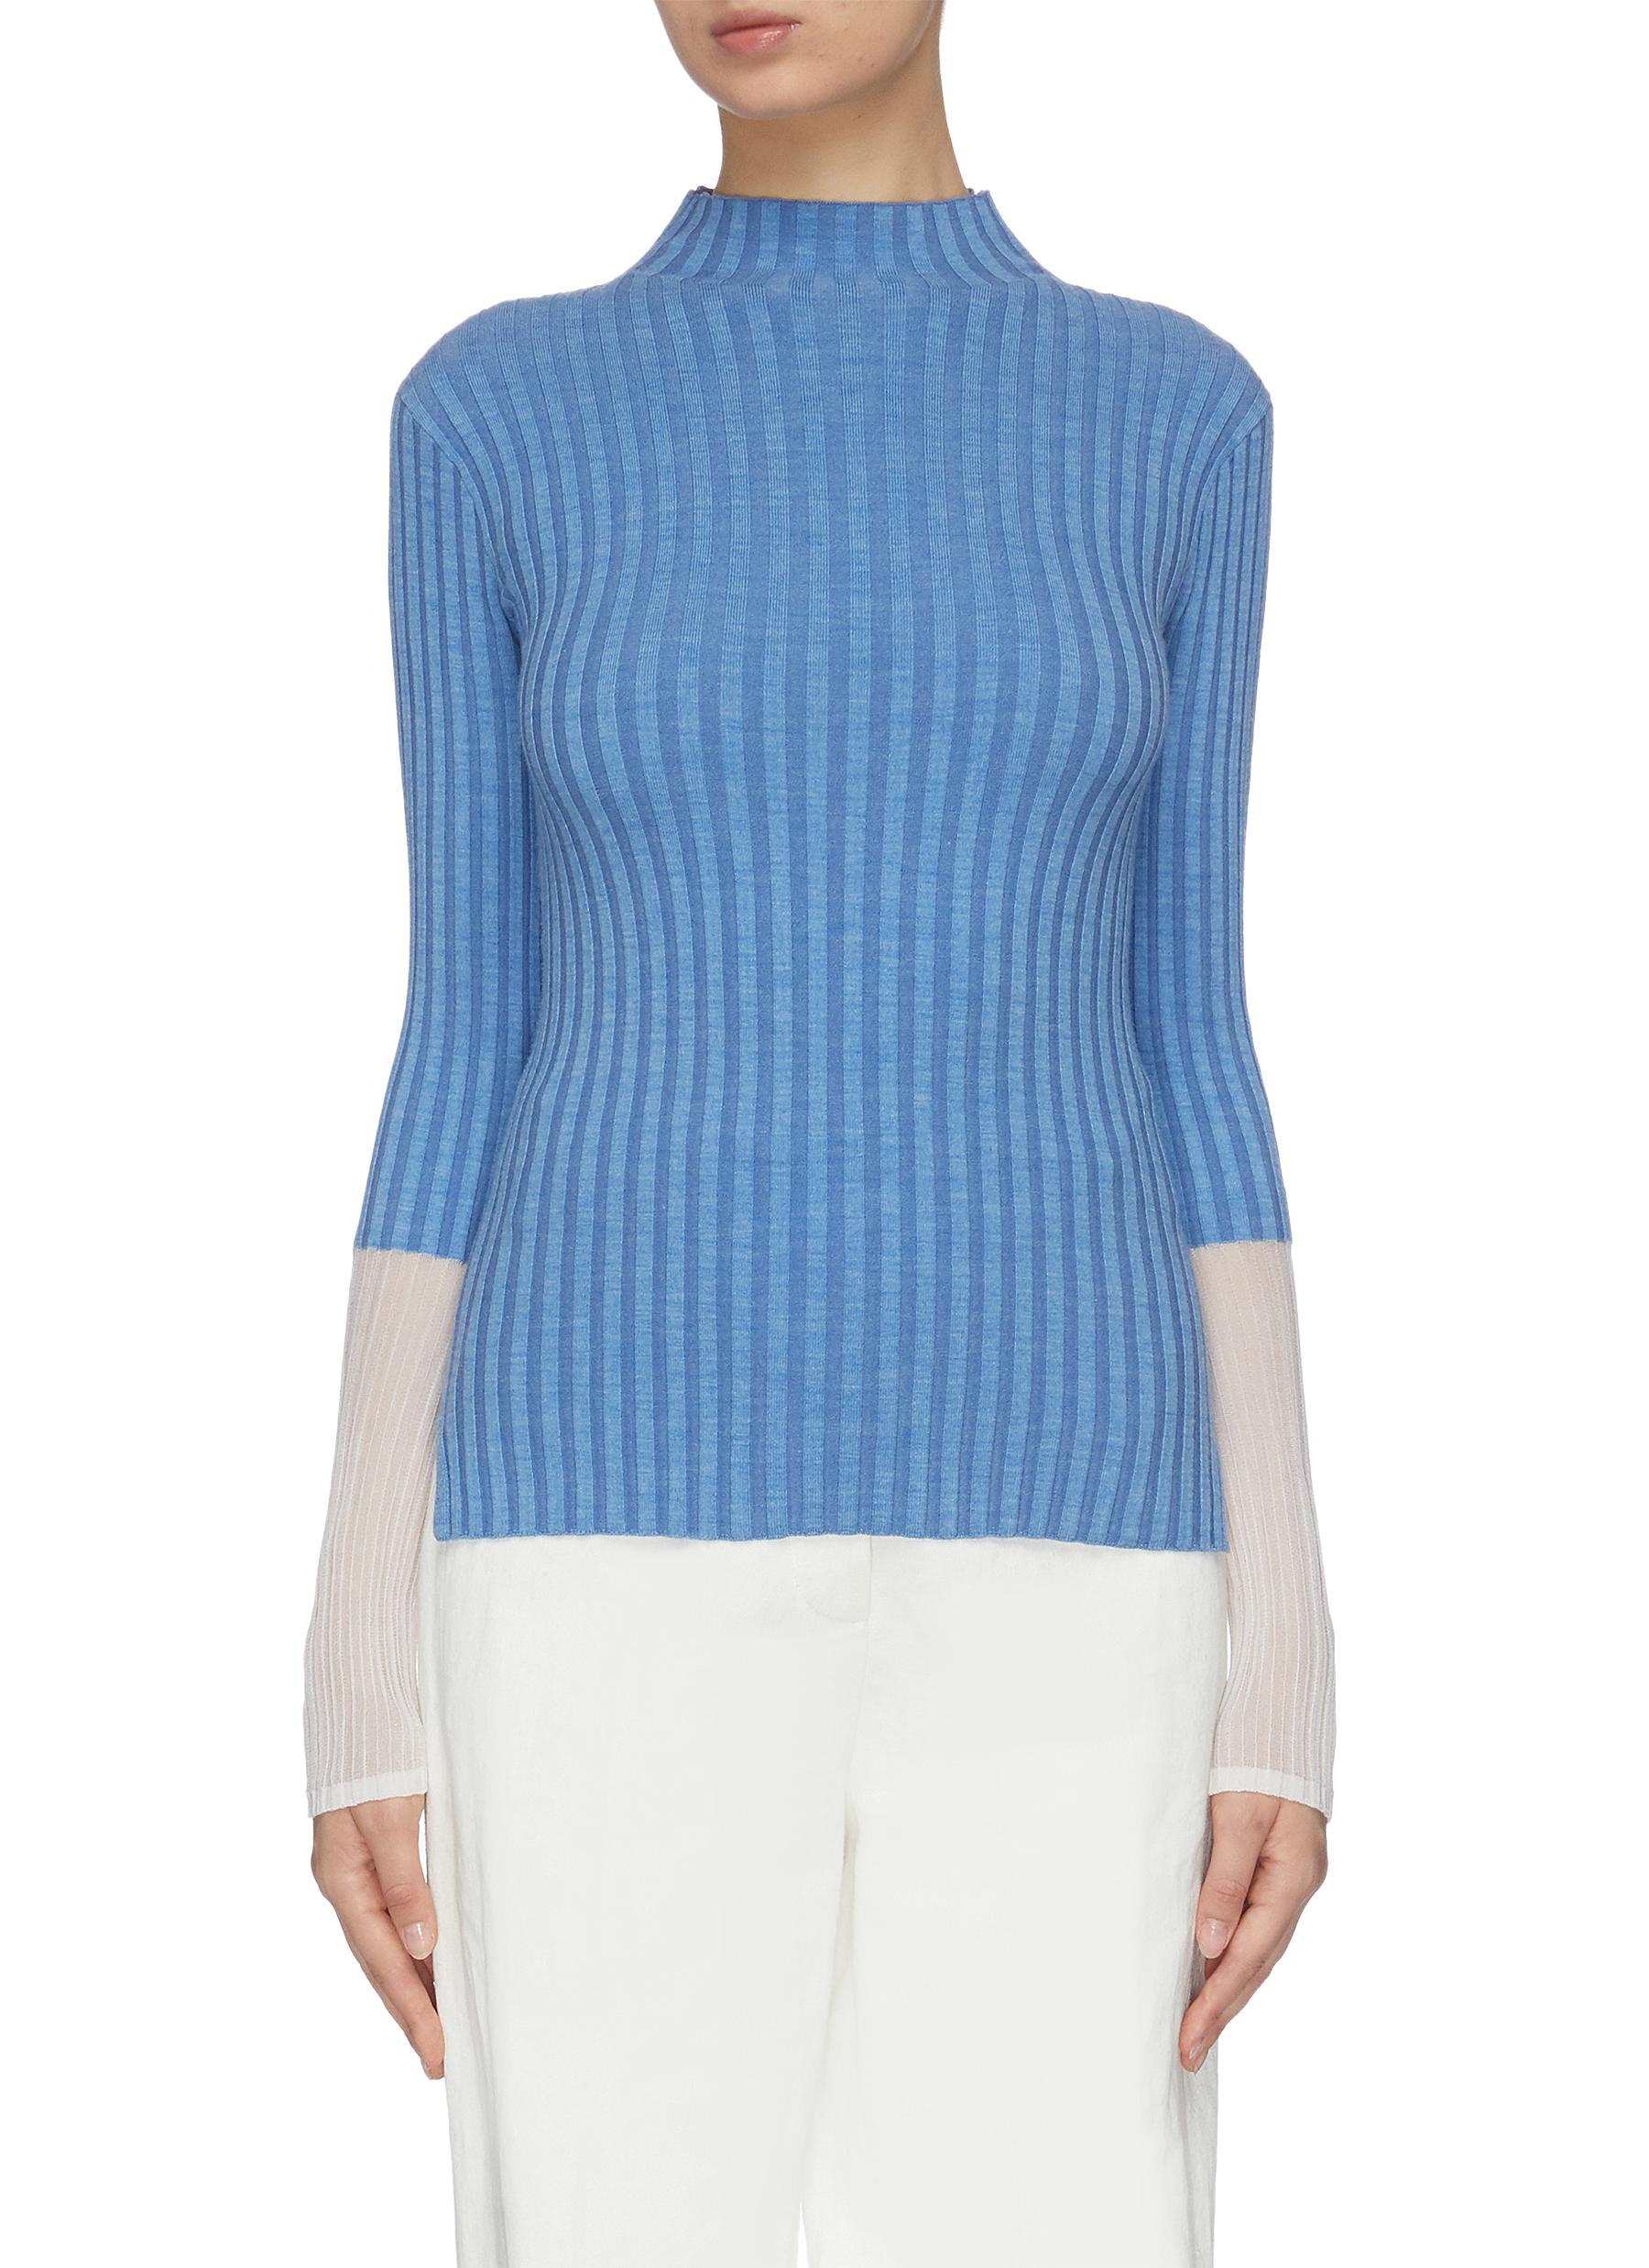 Buy Equil Knitwear High neck contrast sheer panel ribbed wool blend sweater